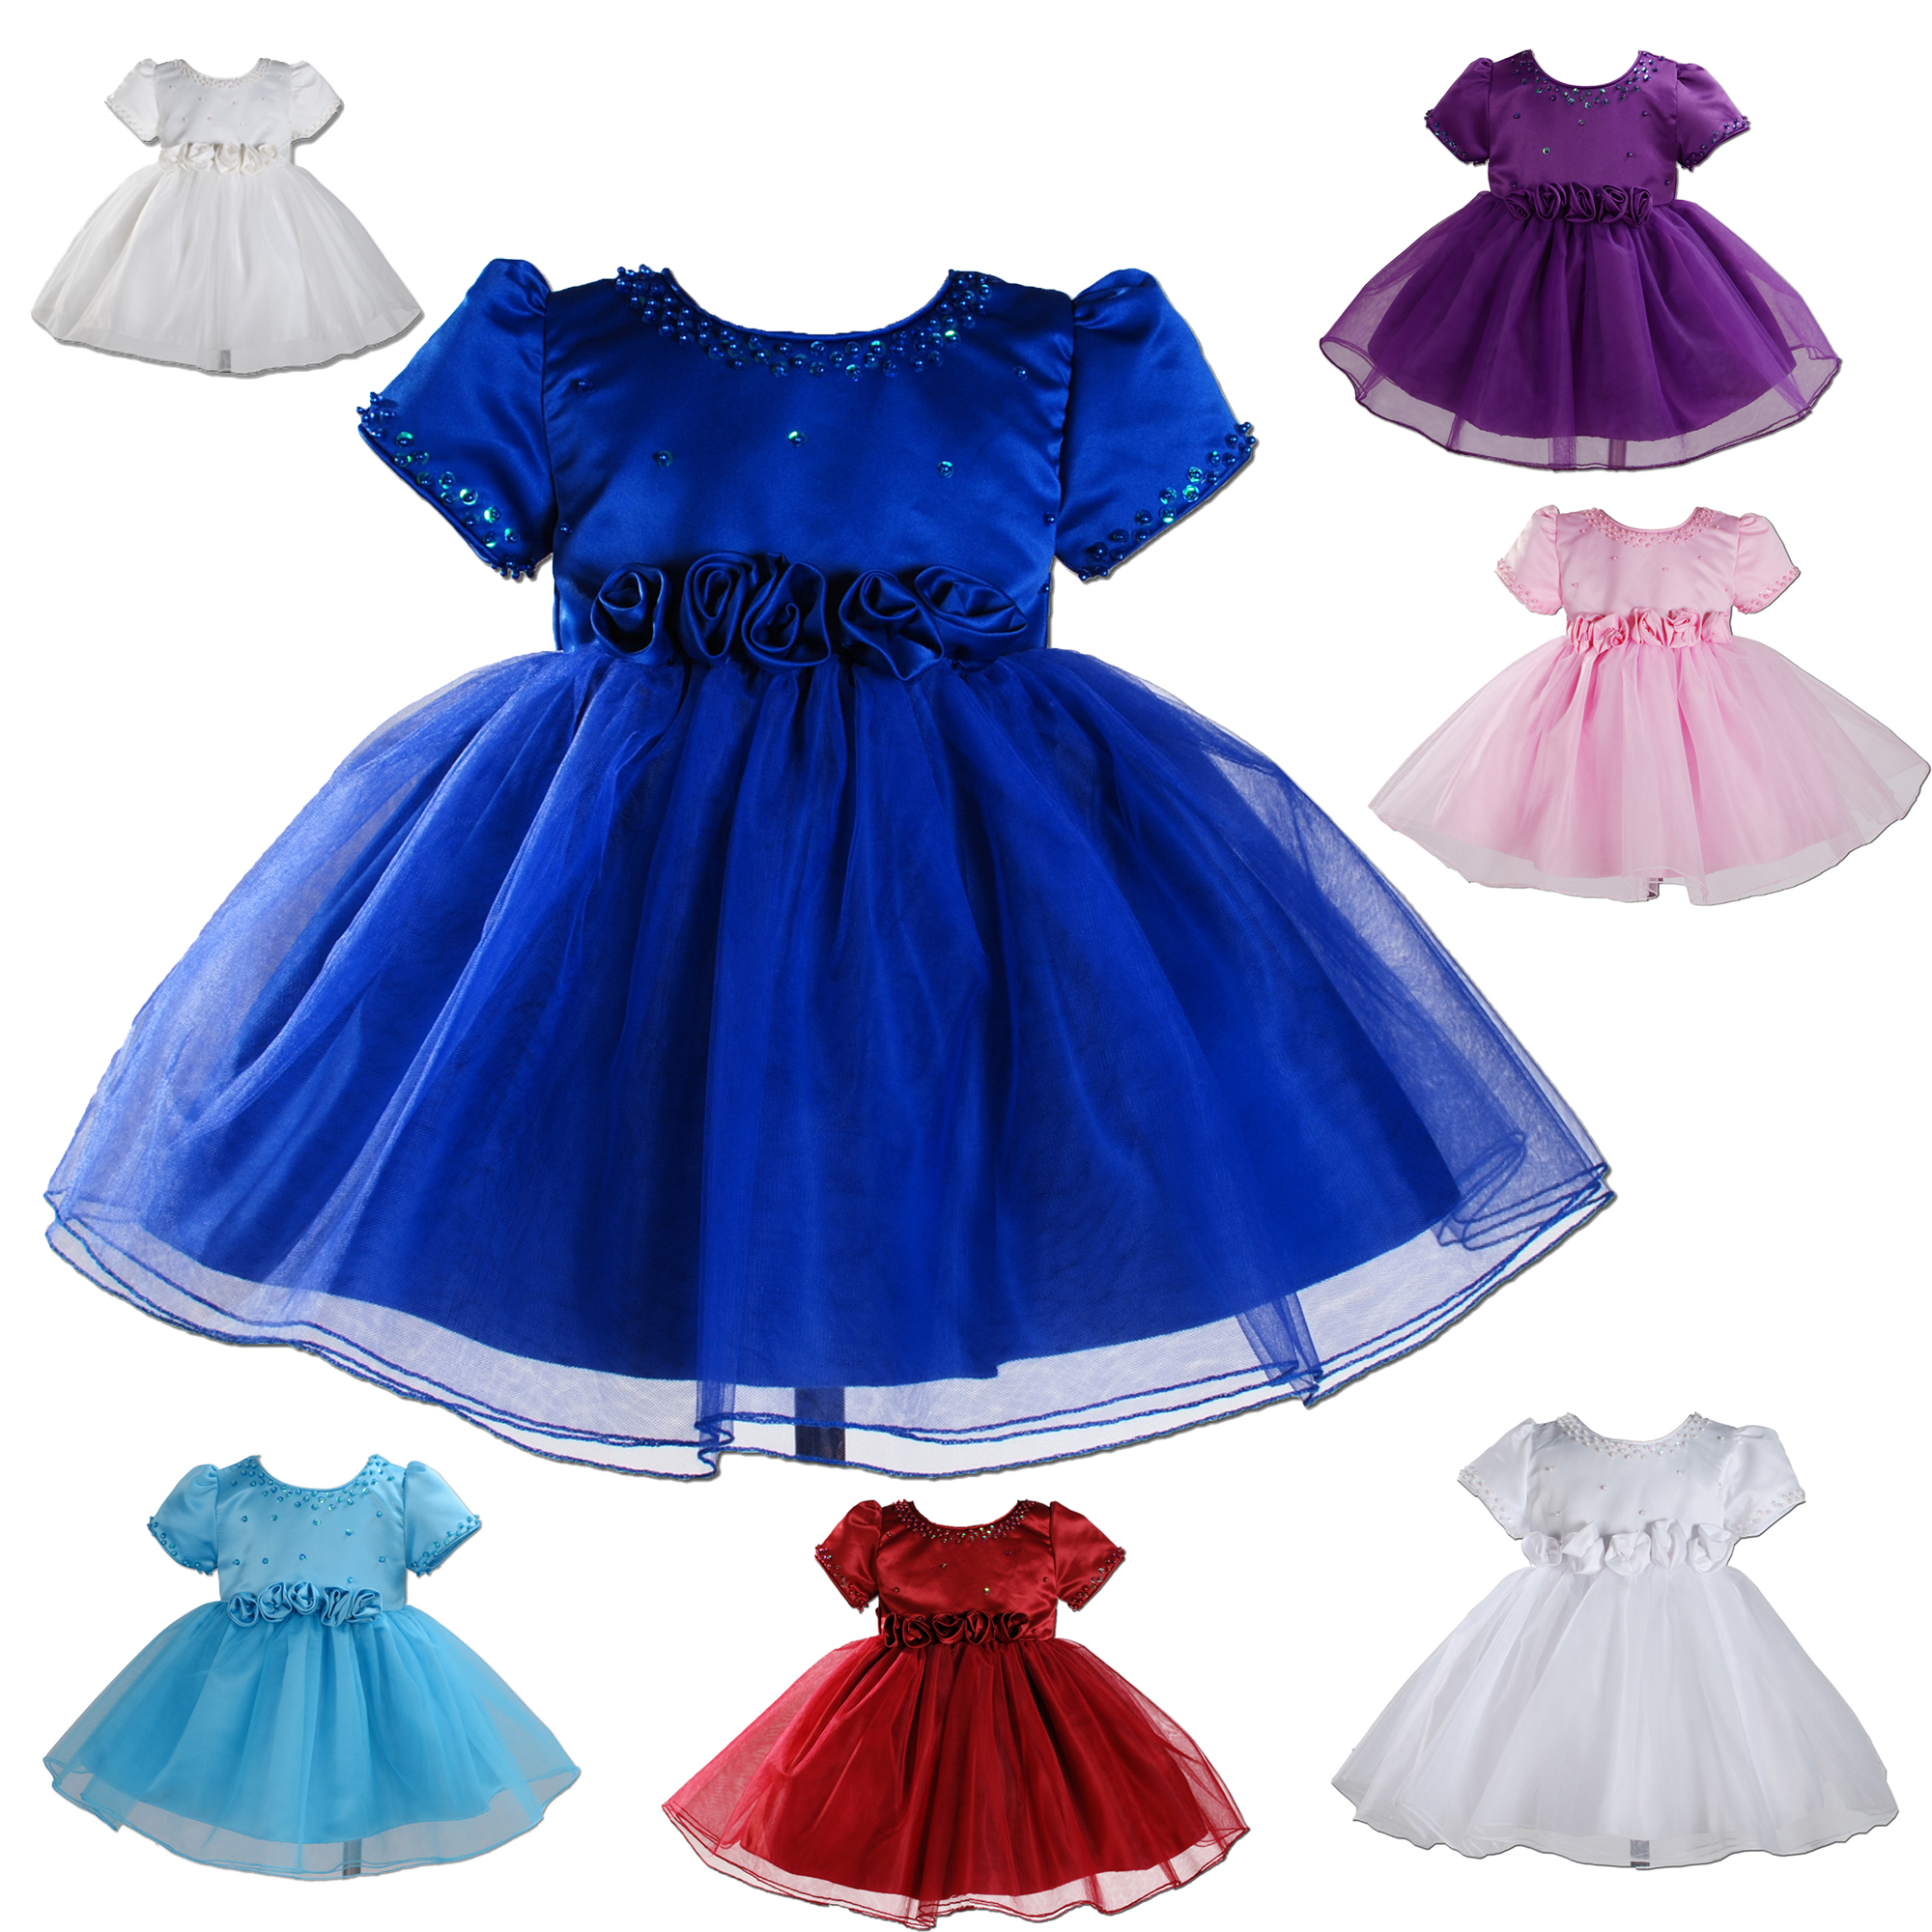 d6c8978e9 Baby Girls Party Dress 6-9 Months to 2-3 Years 888 - cinda.co.uk